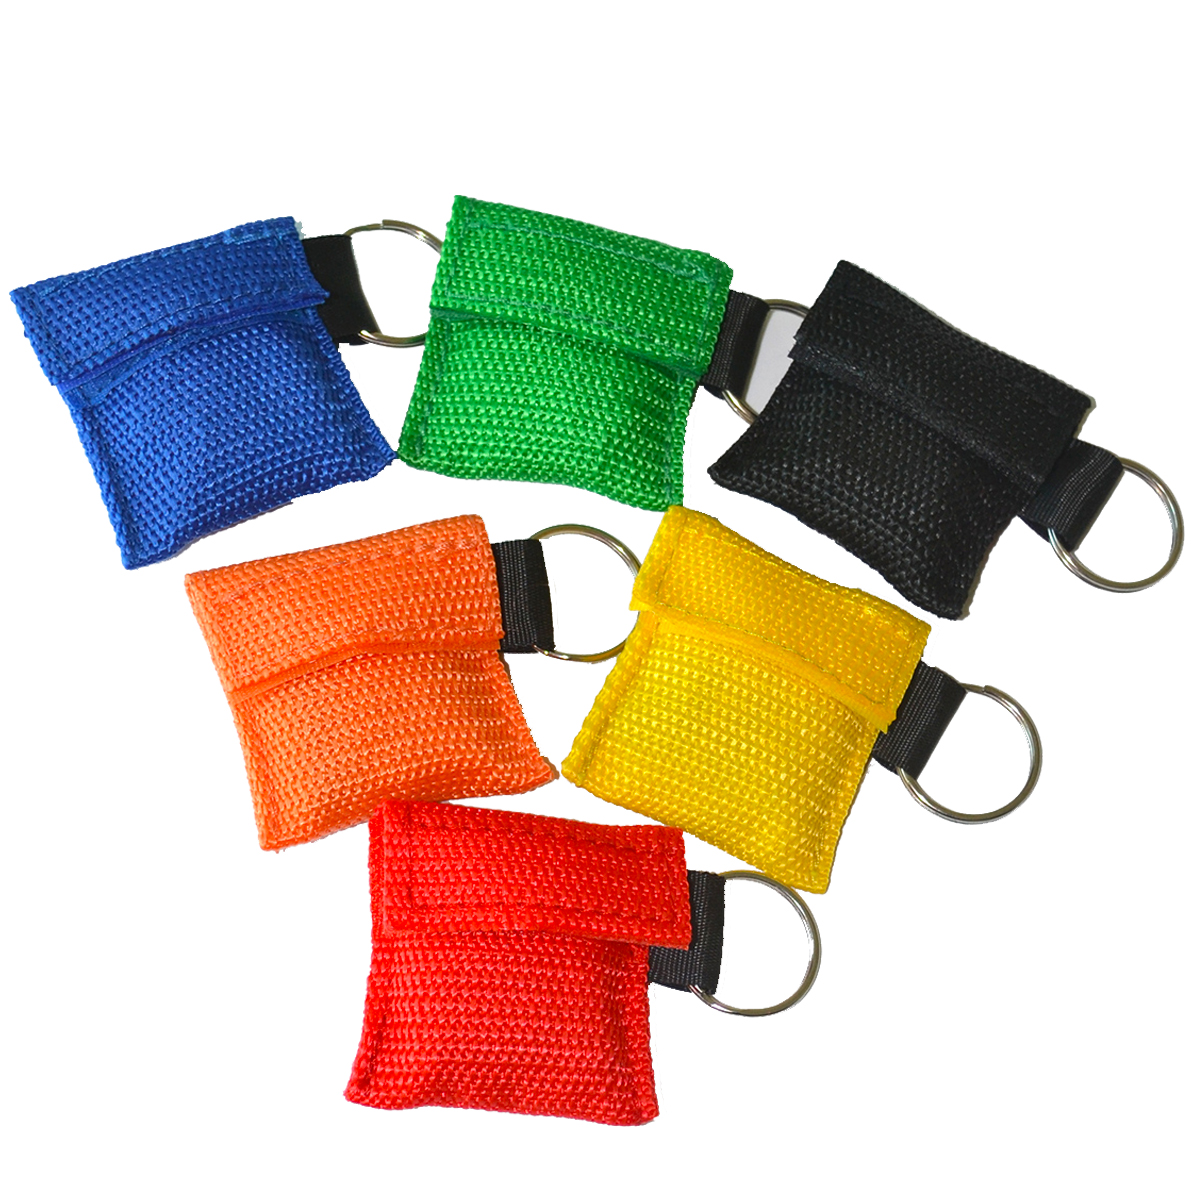 все цены на New 50Pcs/Lot CPR Resucitator Mask Face Shield With Key Chain Key Ring One-way Valve For First Aid Rescue Use Optional Color онлайн